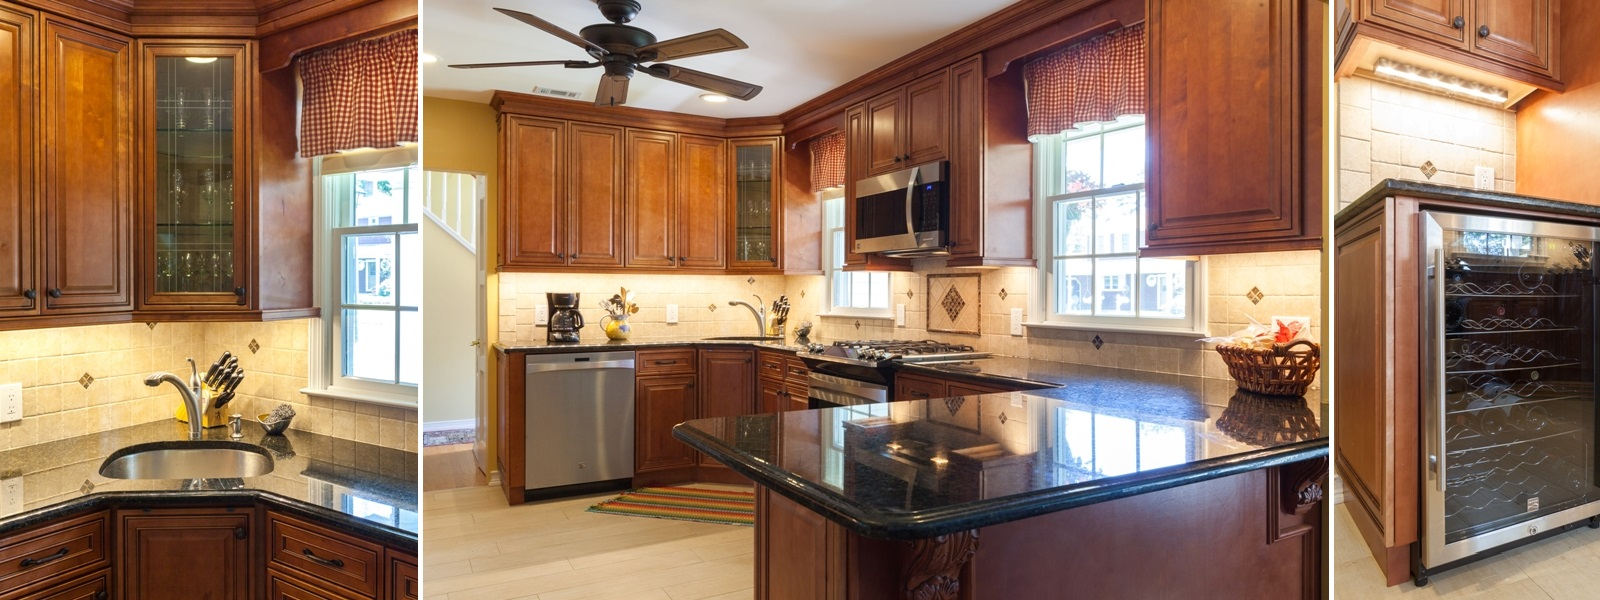 cabinets tucson used cabinet kitchen decor of inspirational